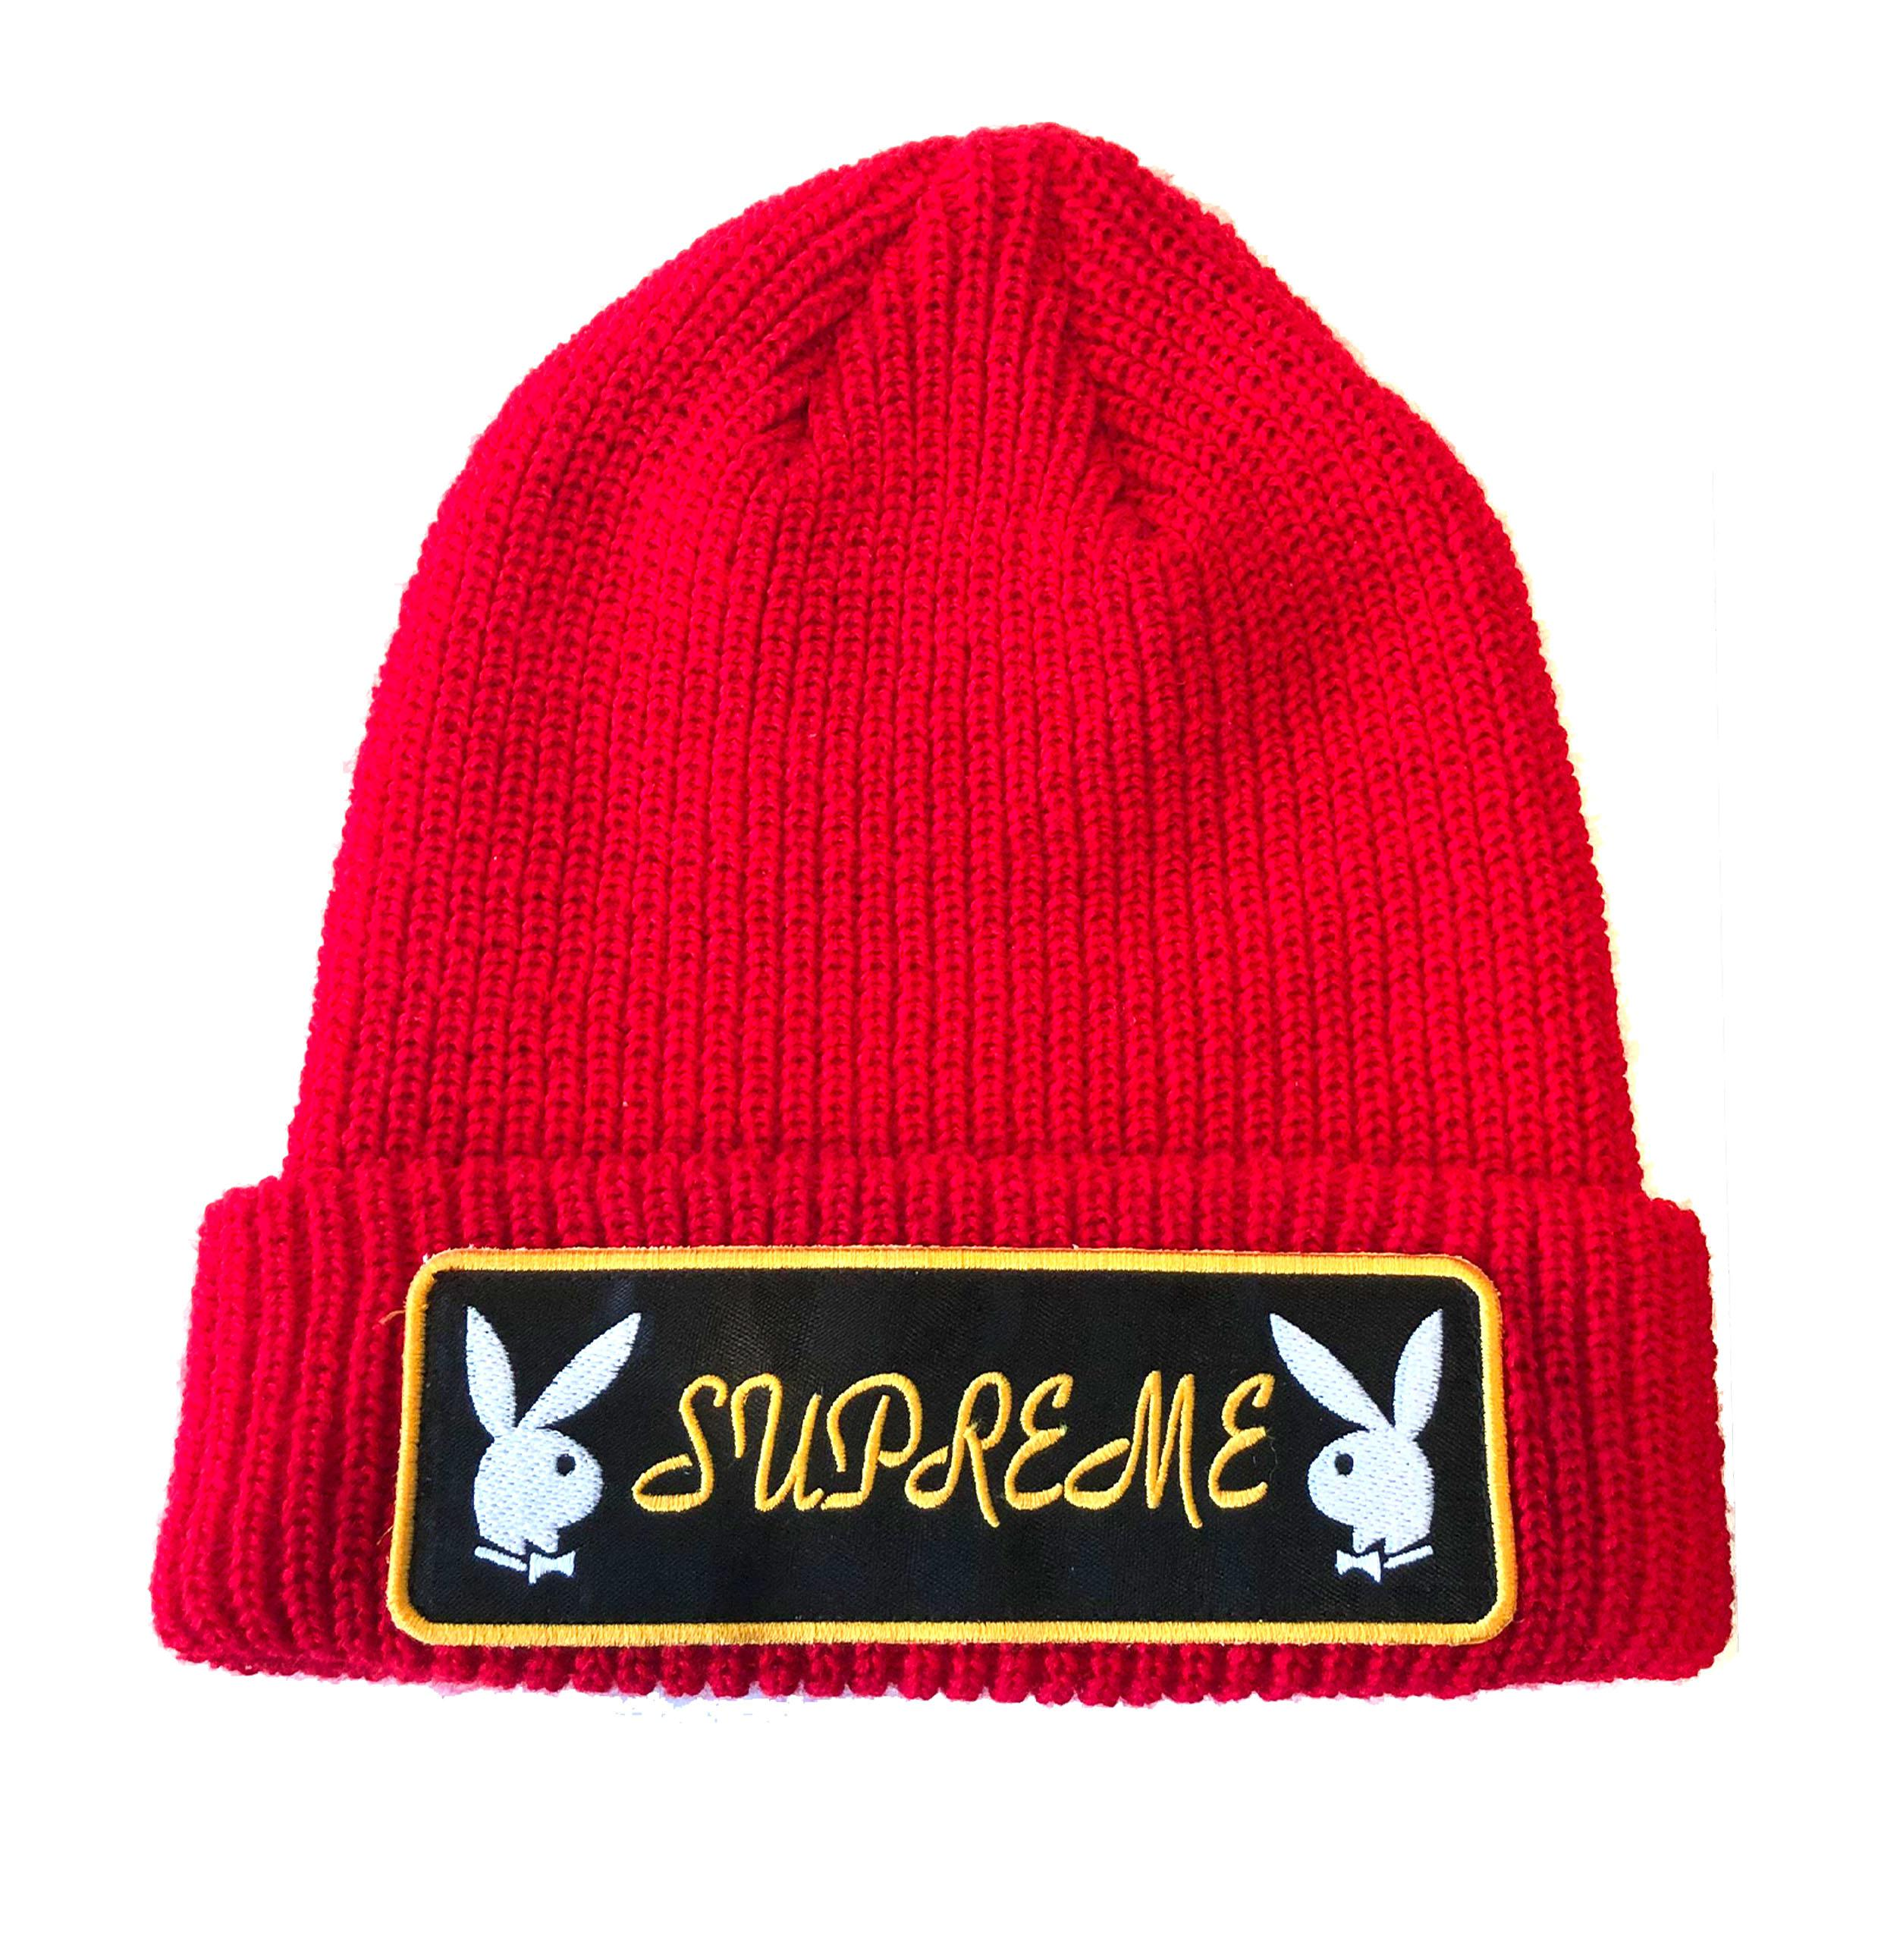 2f277175 Supreme Playboy Beanie Red in Red for Men - Lyst